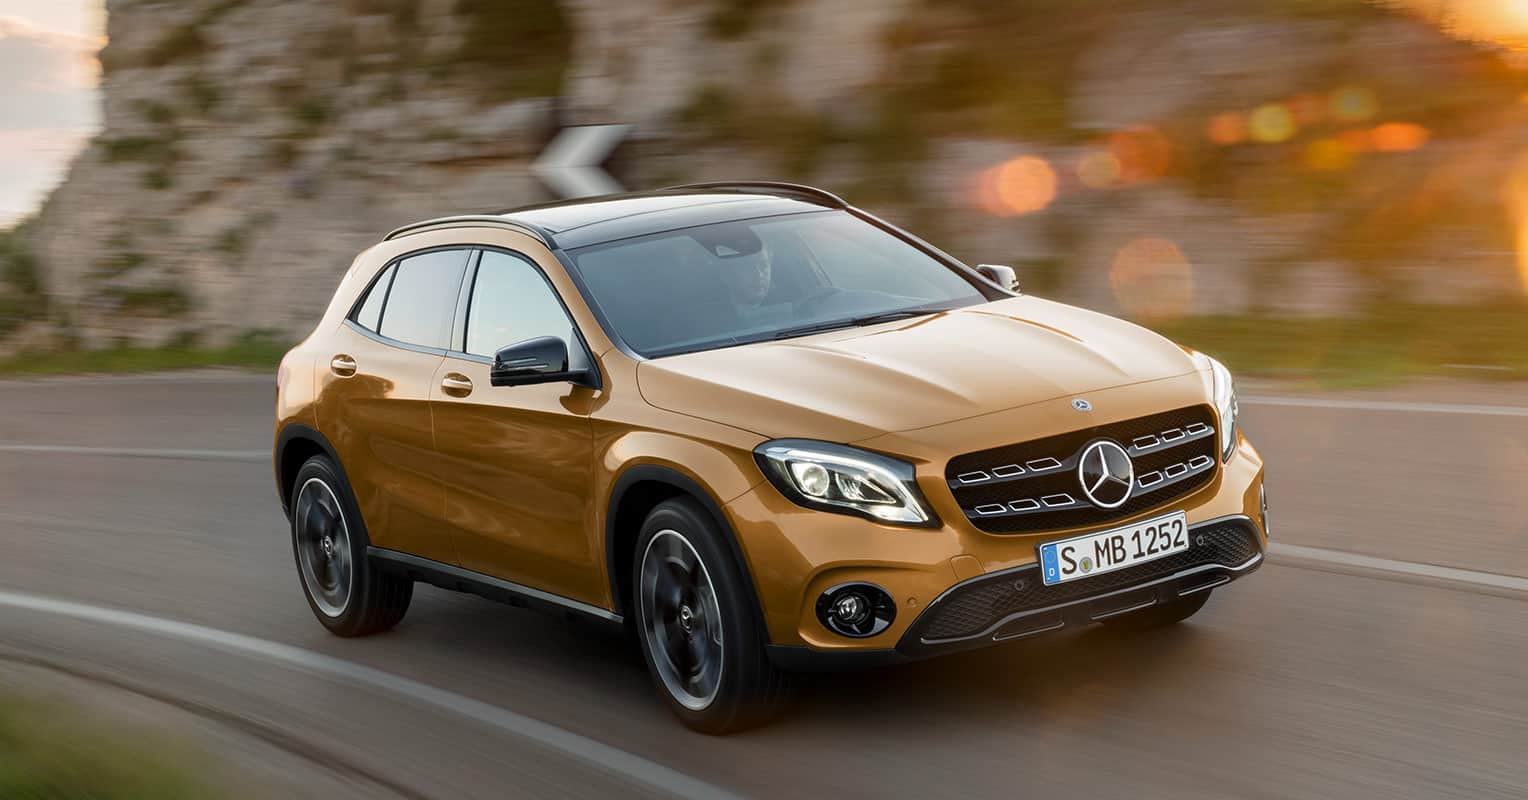 Mercedes-Benz Clase GLA frontal